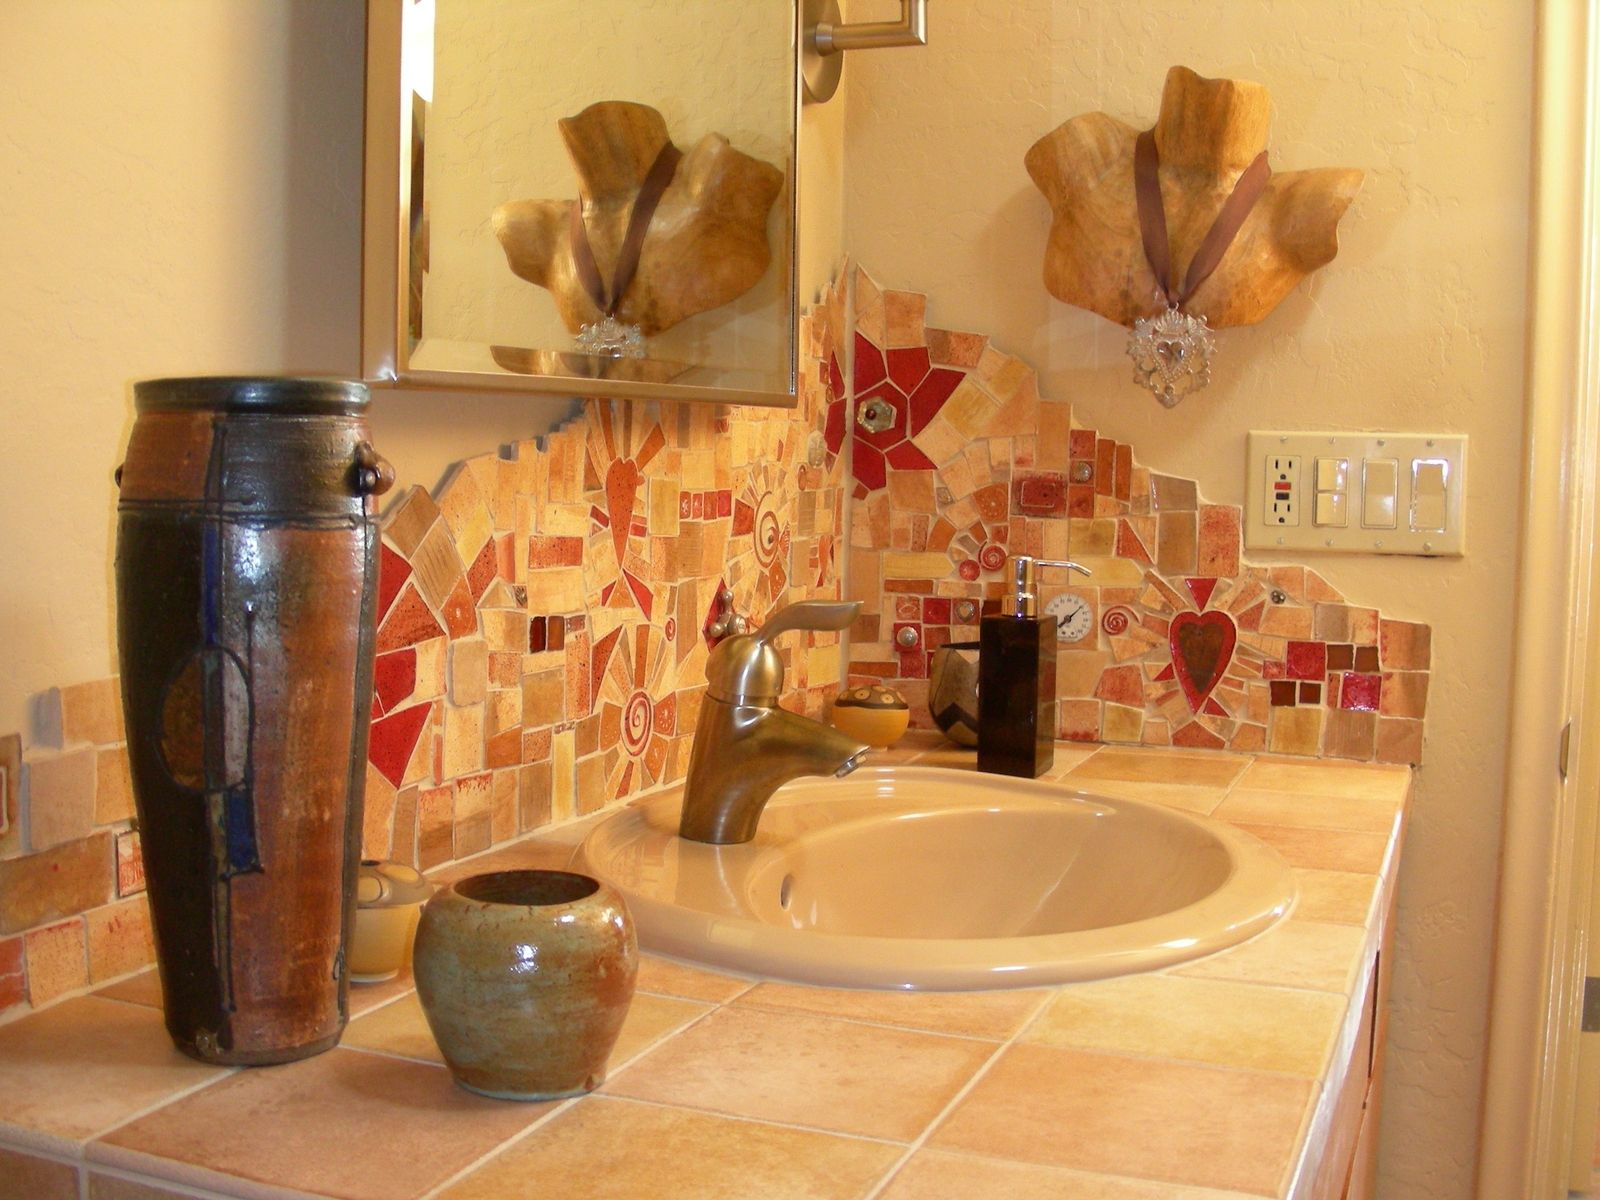 Custom made hand made tile mosaic bathroom backsplash by for Bathroom mosaic design